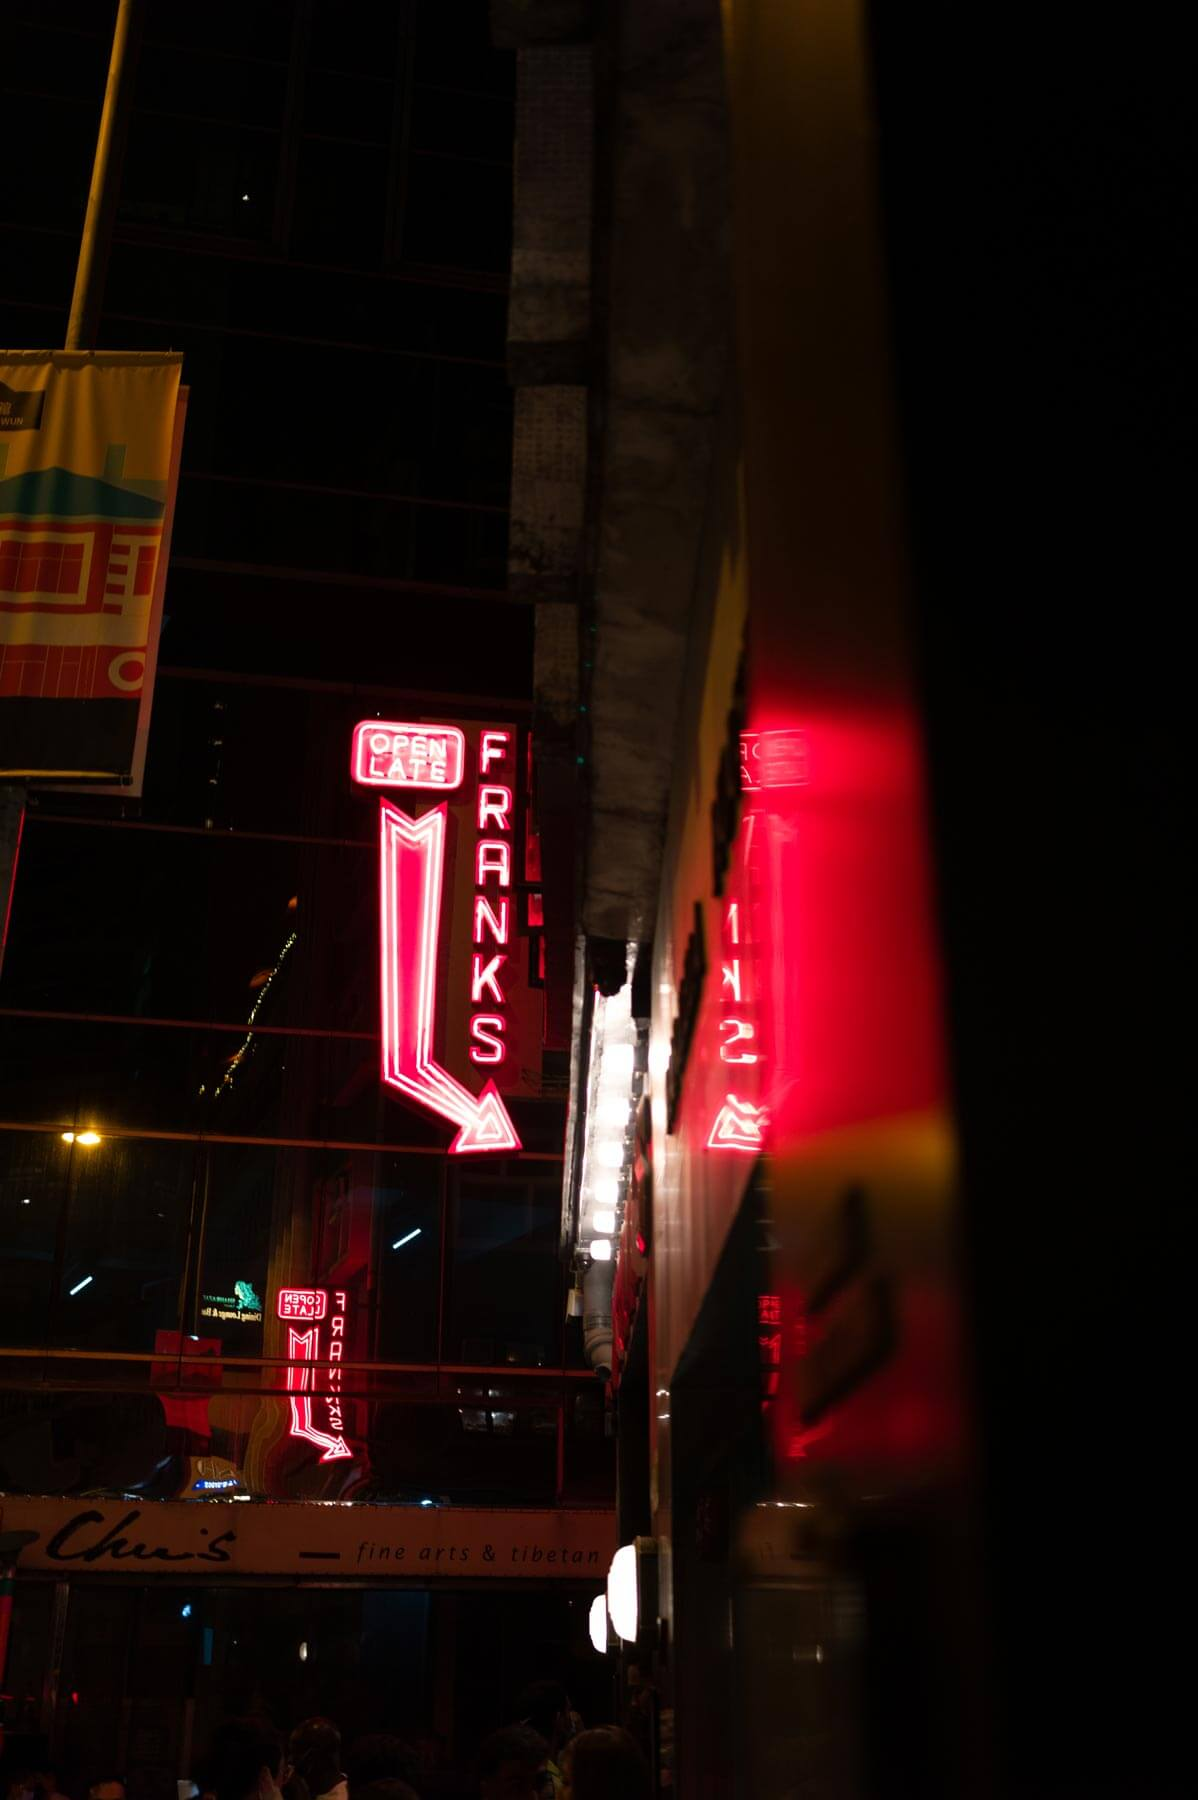 Voigtlander-35mm-f2-APO-lanthar-first-impression-review-lens-lenses-gear-test-new-vm-m-mount-sharpness-great-perfromance-at-night-neon-sign-hong-kong-red